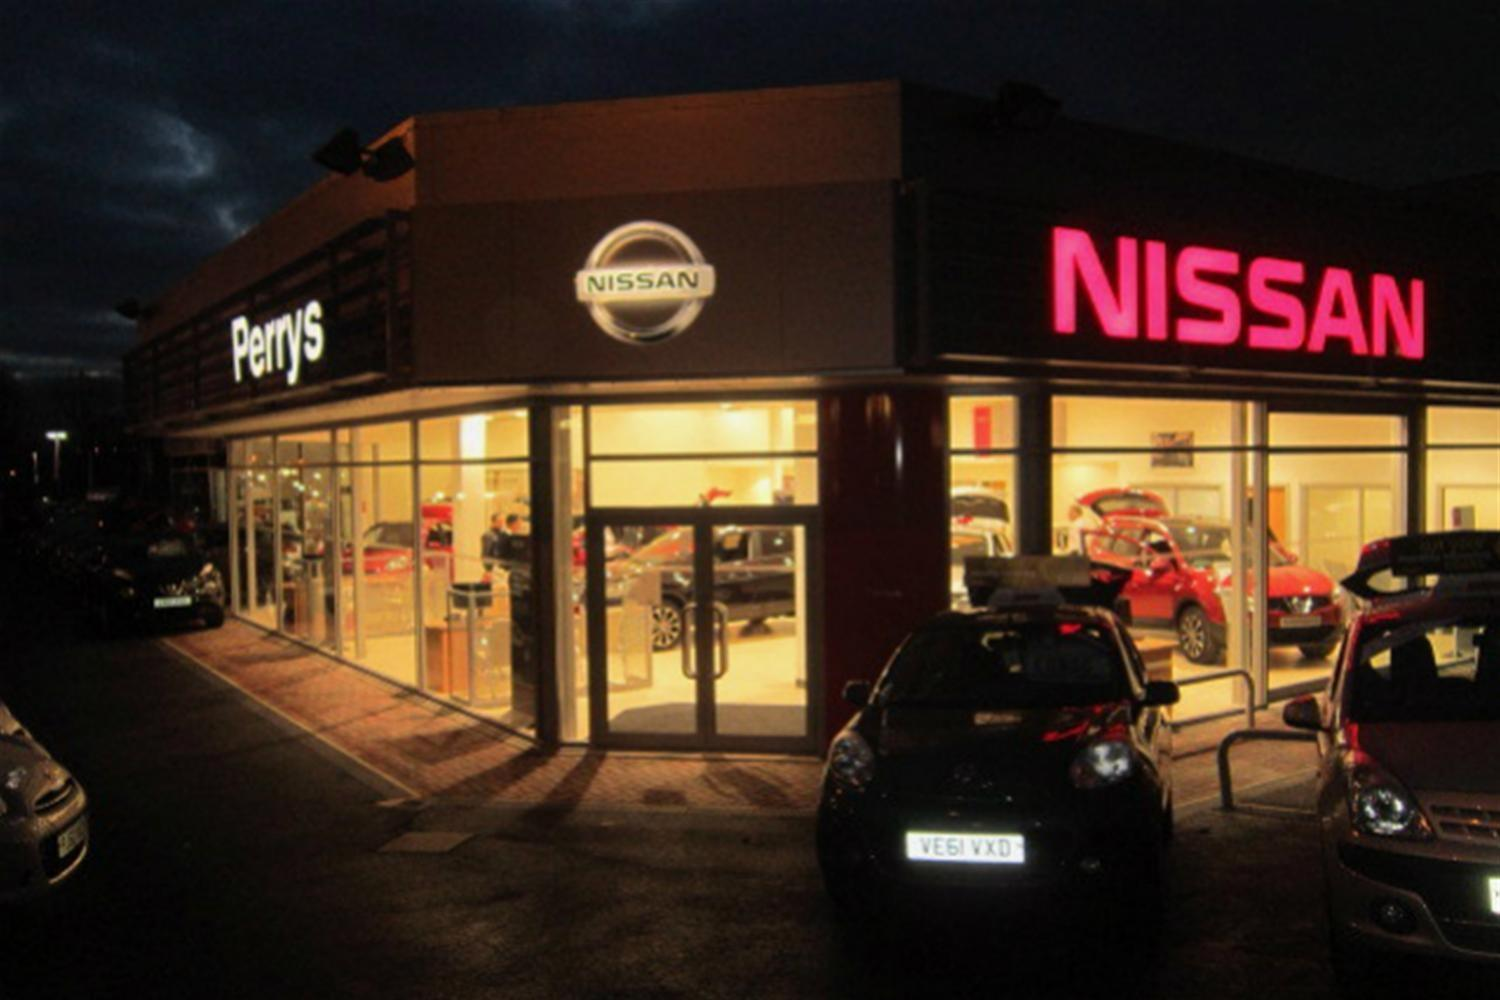 Perrys Open Nissan Blackburn Dealership